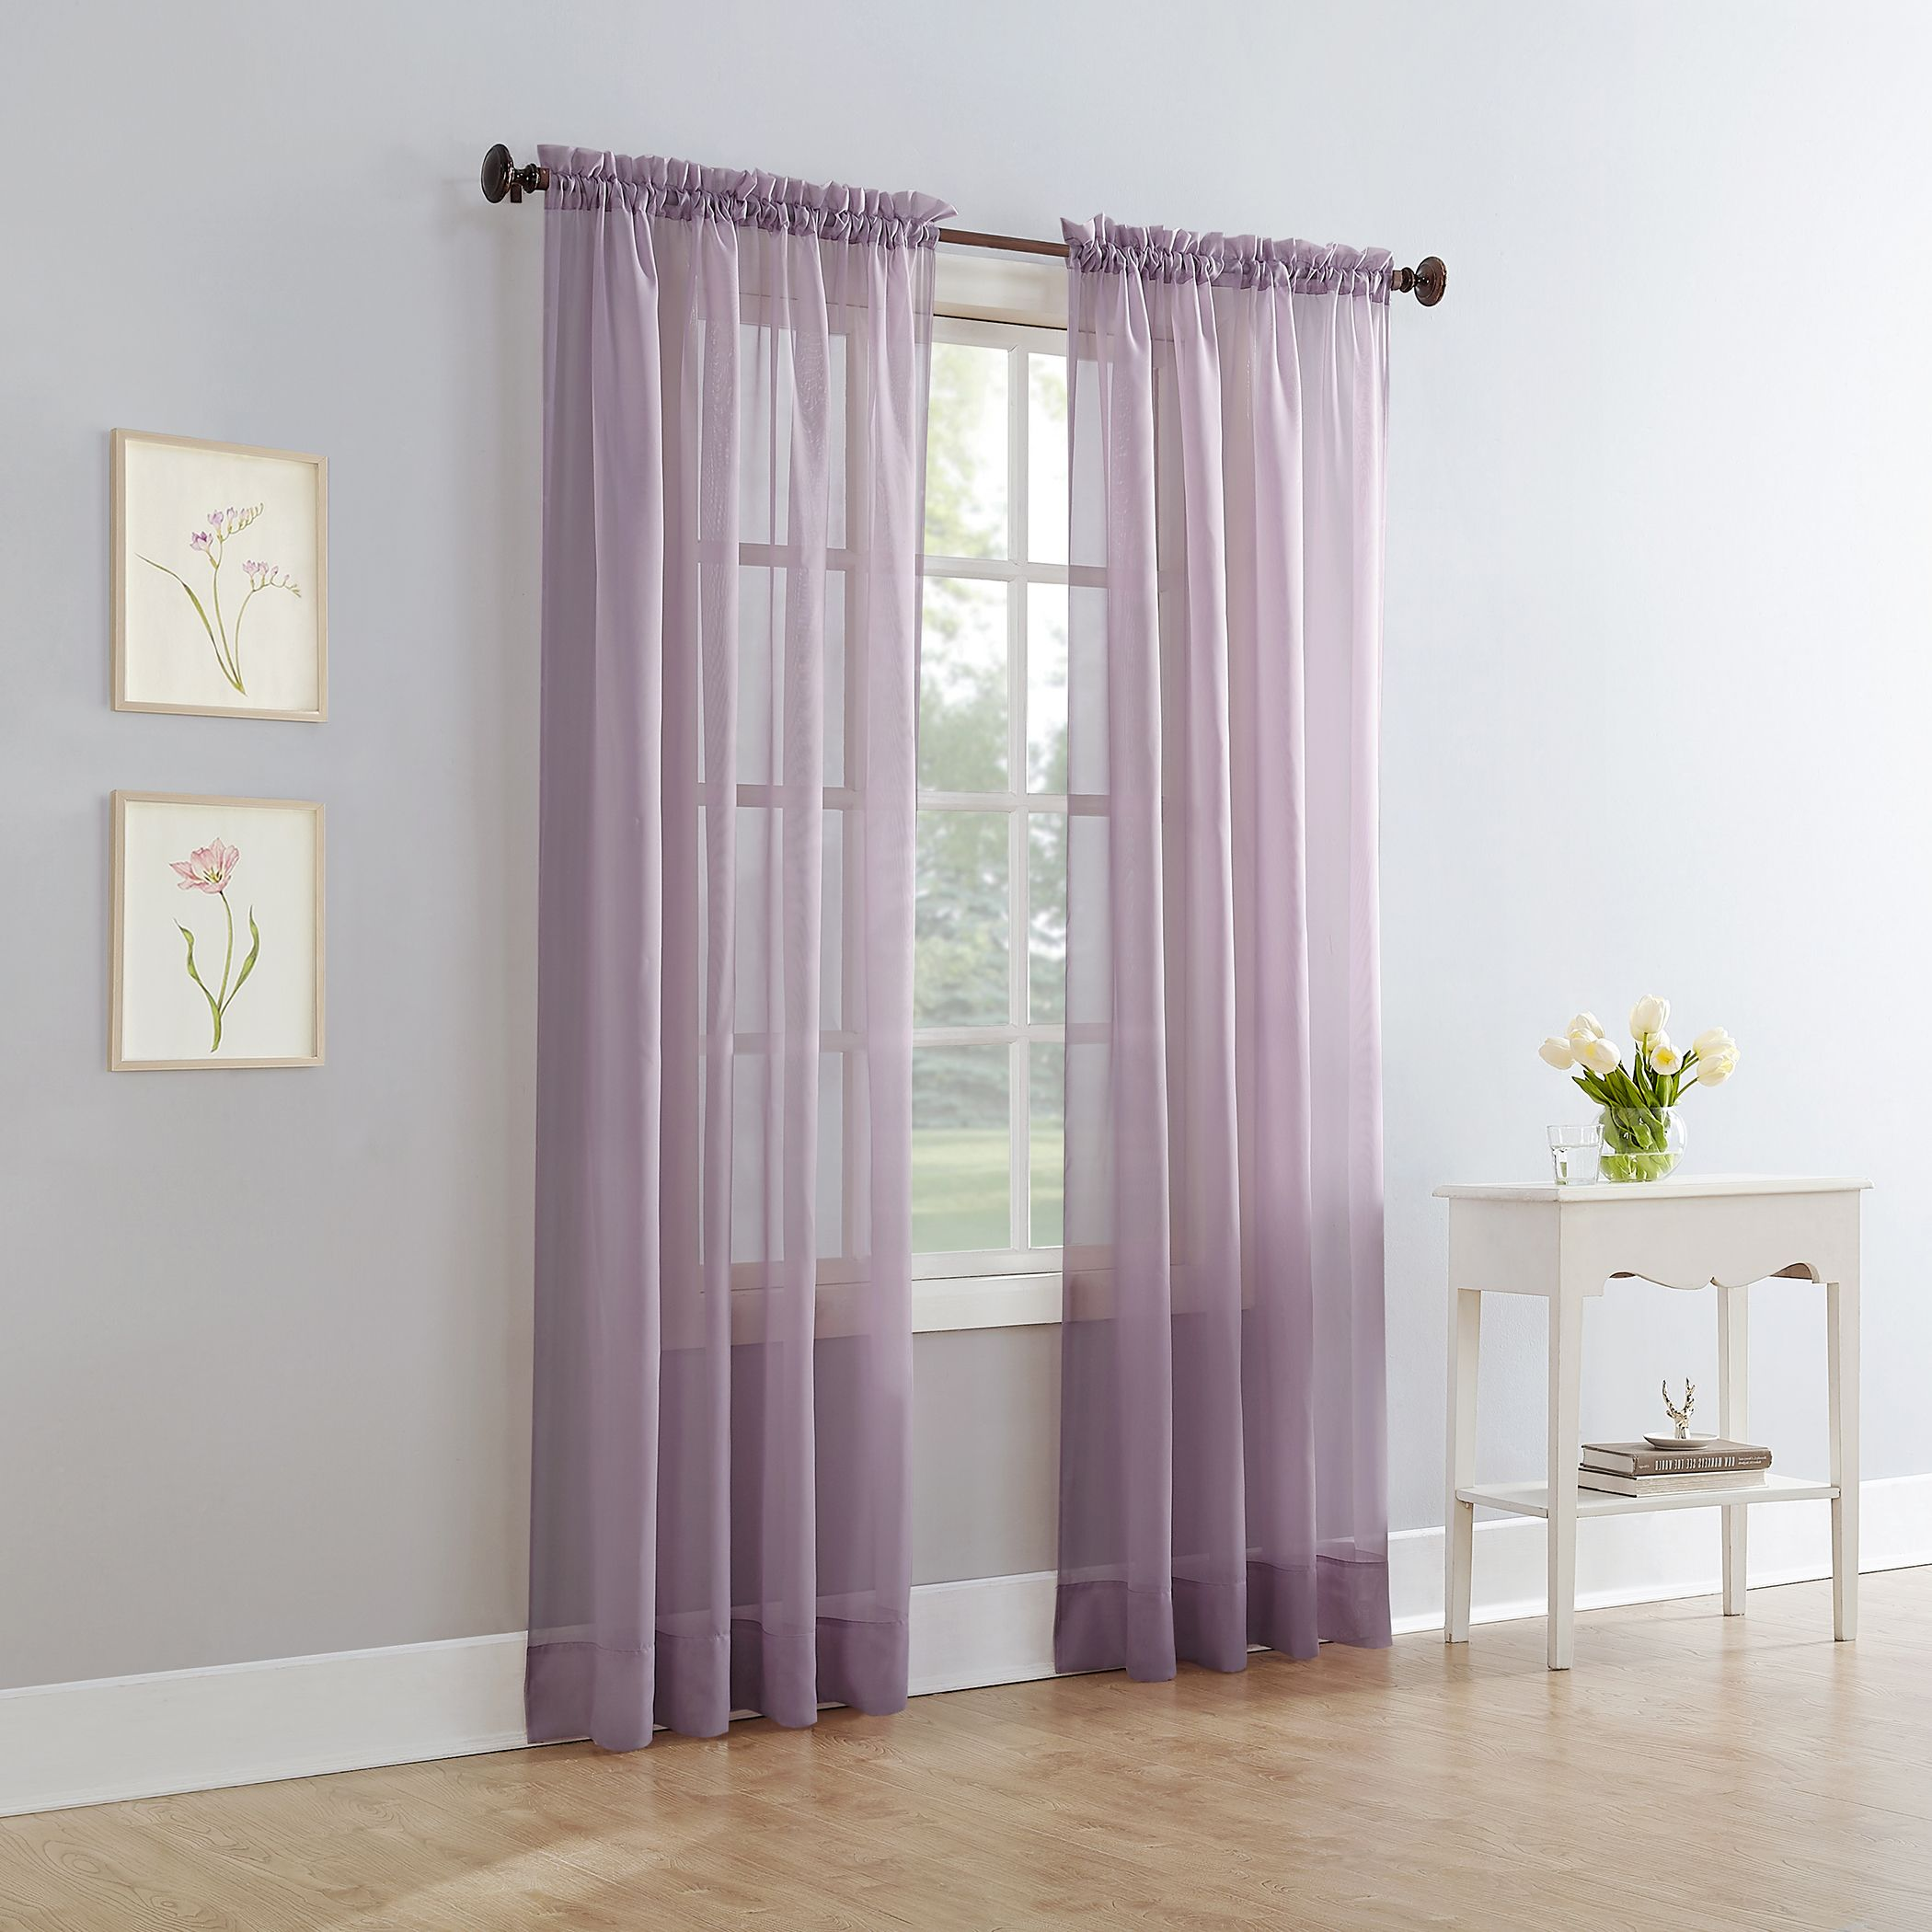 Home Voile Curtains Curtains Panel Curtains